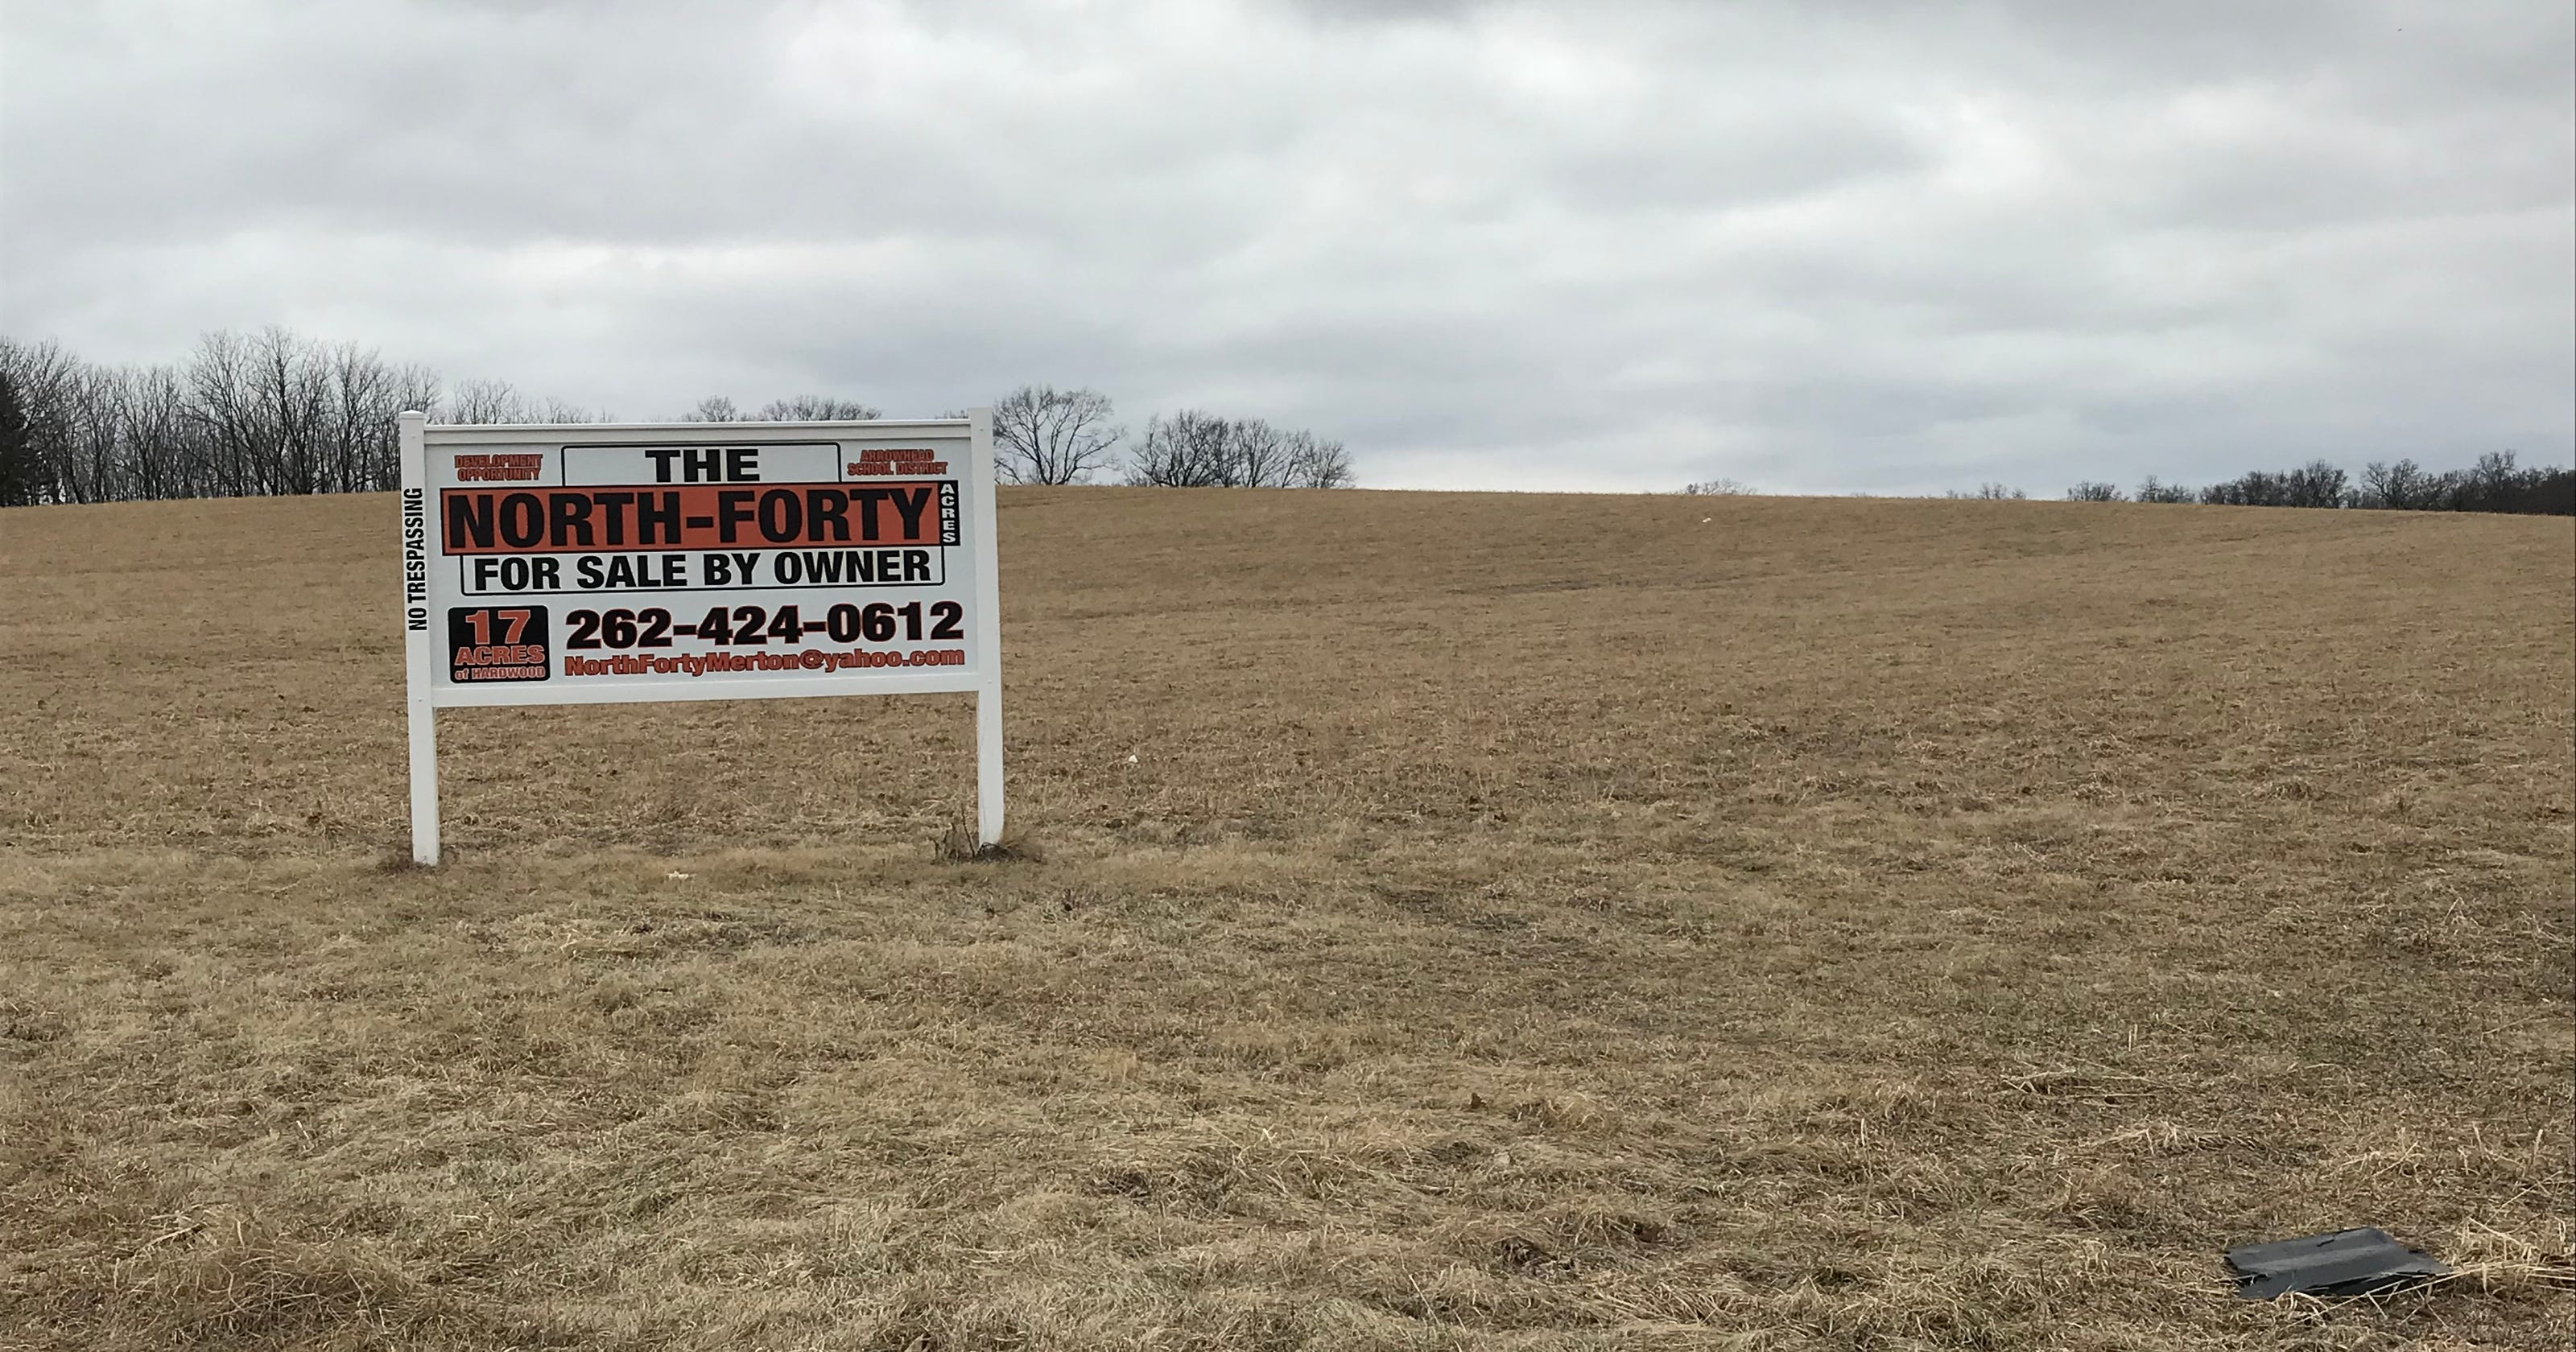 Hartland Condo Development Moves Forward With Possible Annexation Polygo Minie Mouse By Sentinel